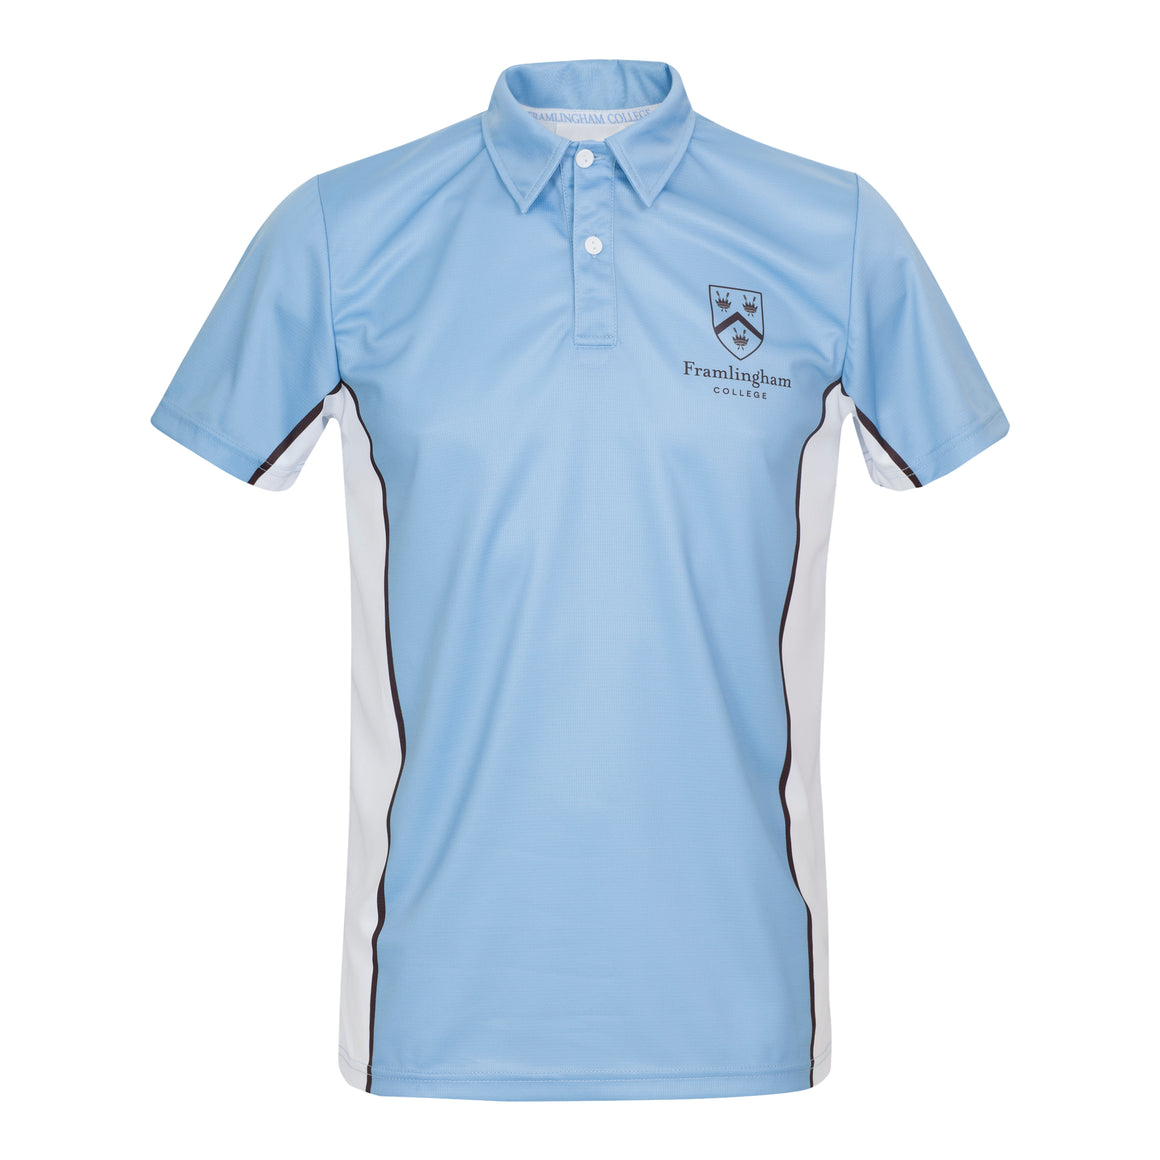 Framlingham College - Match Shirt